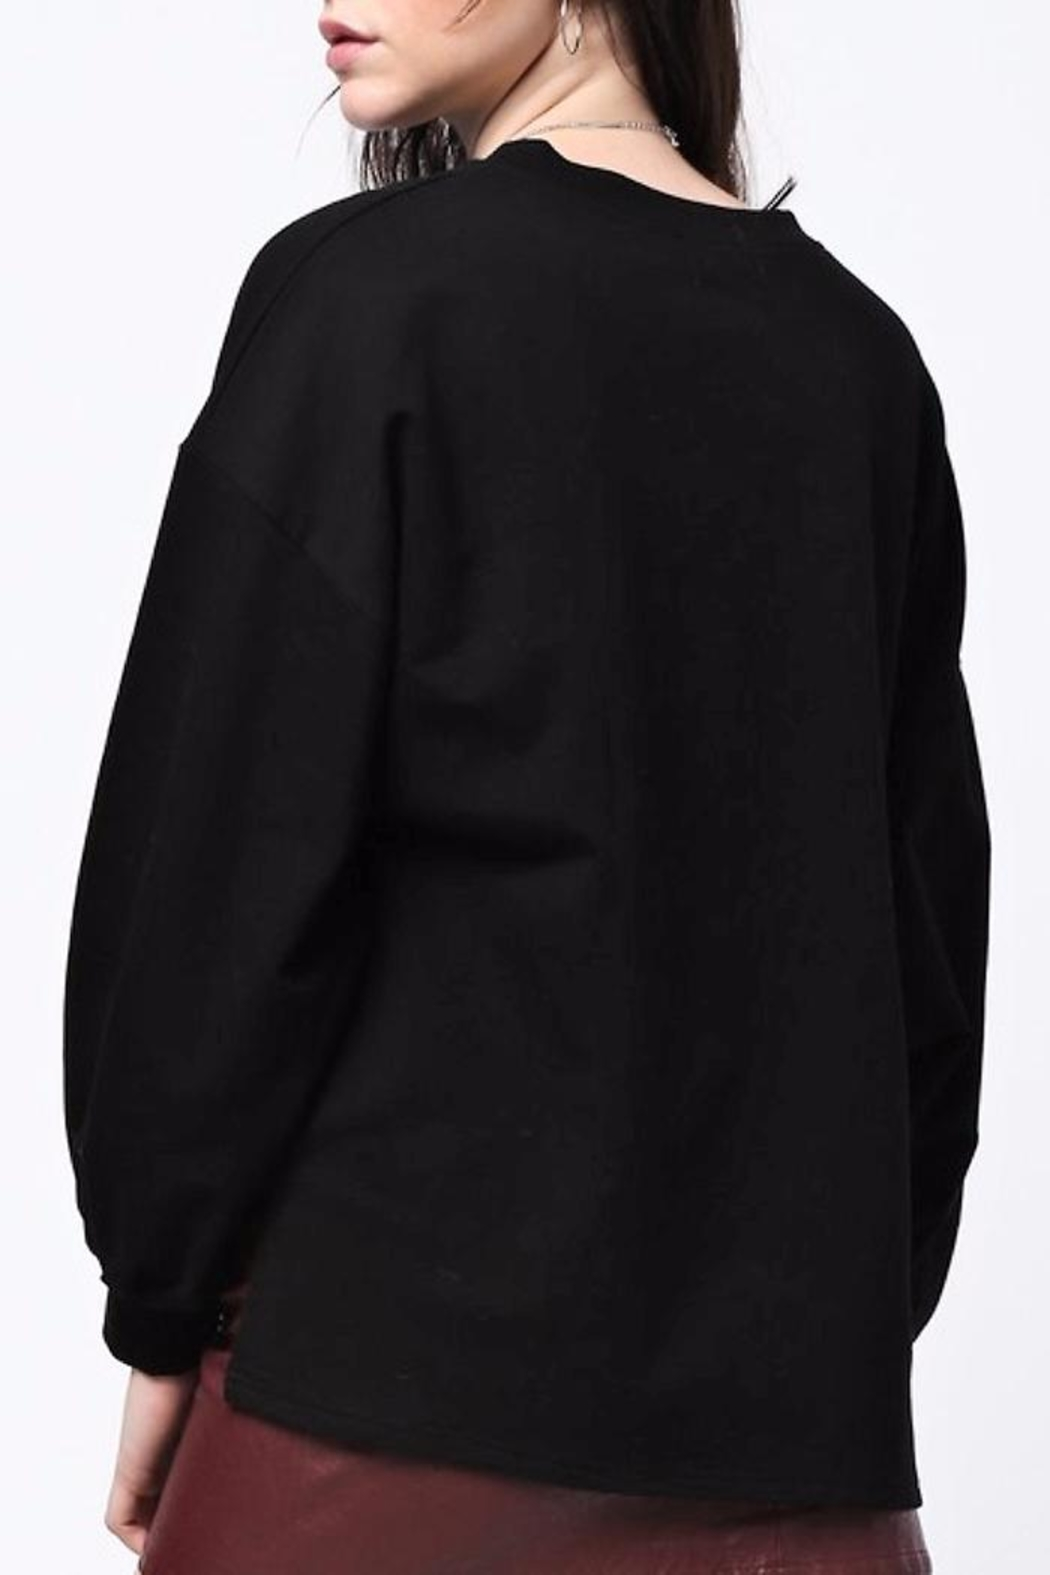 People Outfitter Much Loved Sweatshirt - Front Full Image